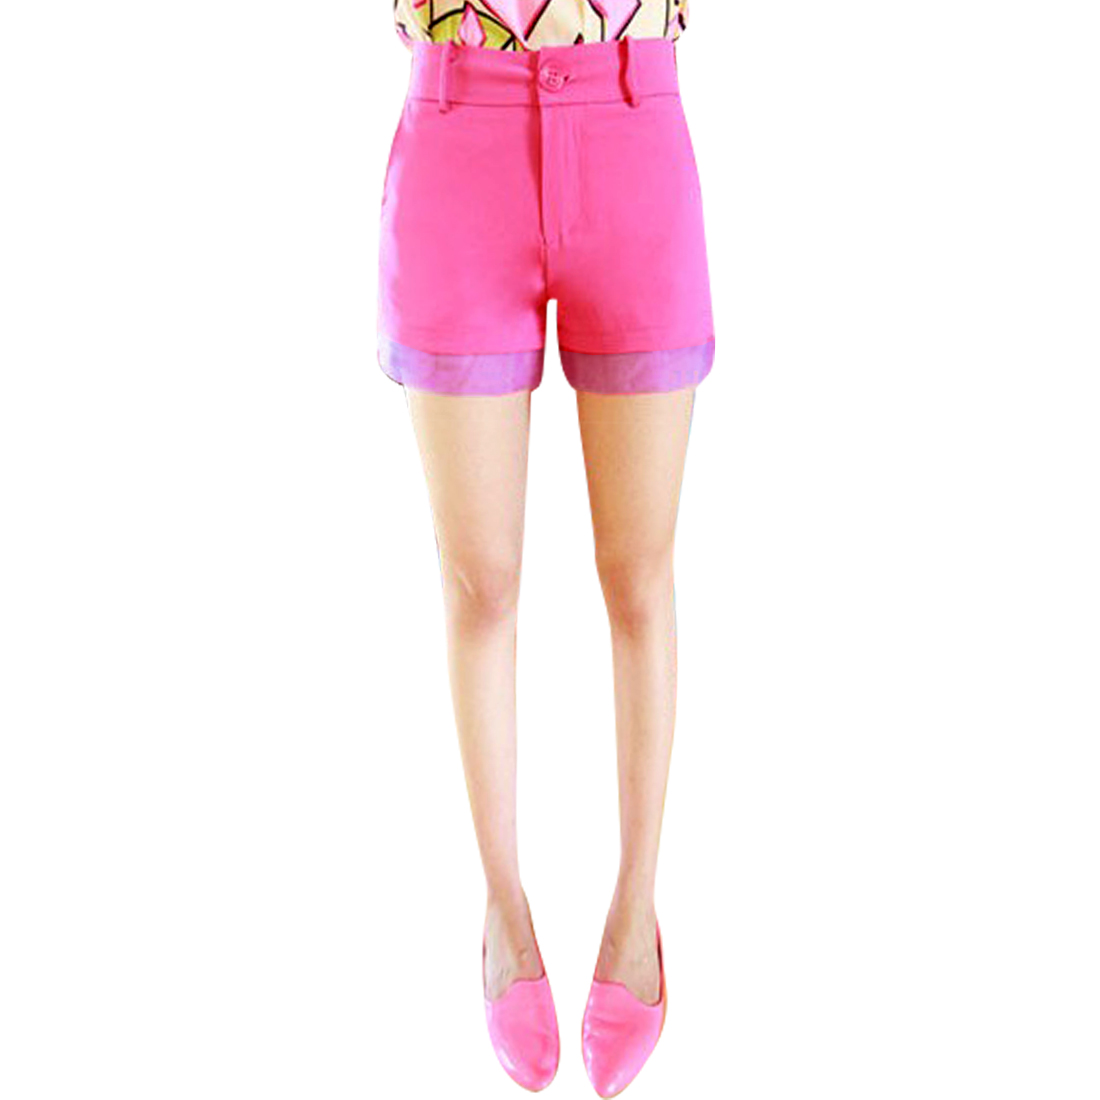 Ladies Zipper Front Solid Color Hot Chic Mini Short Pants Pink XS